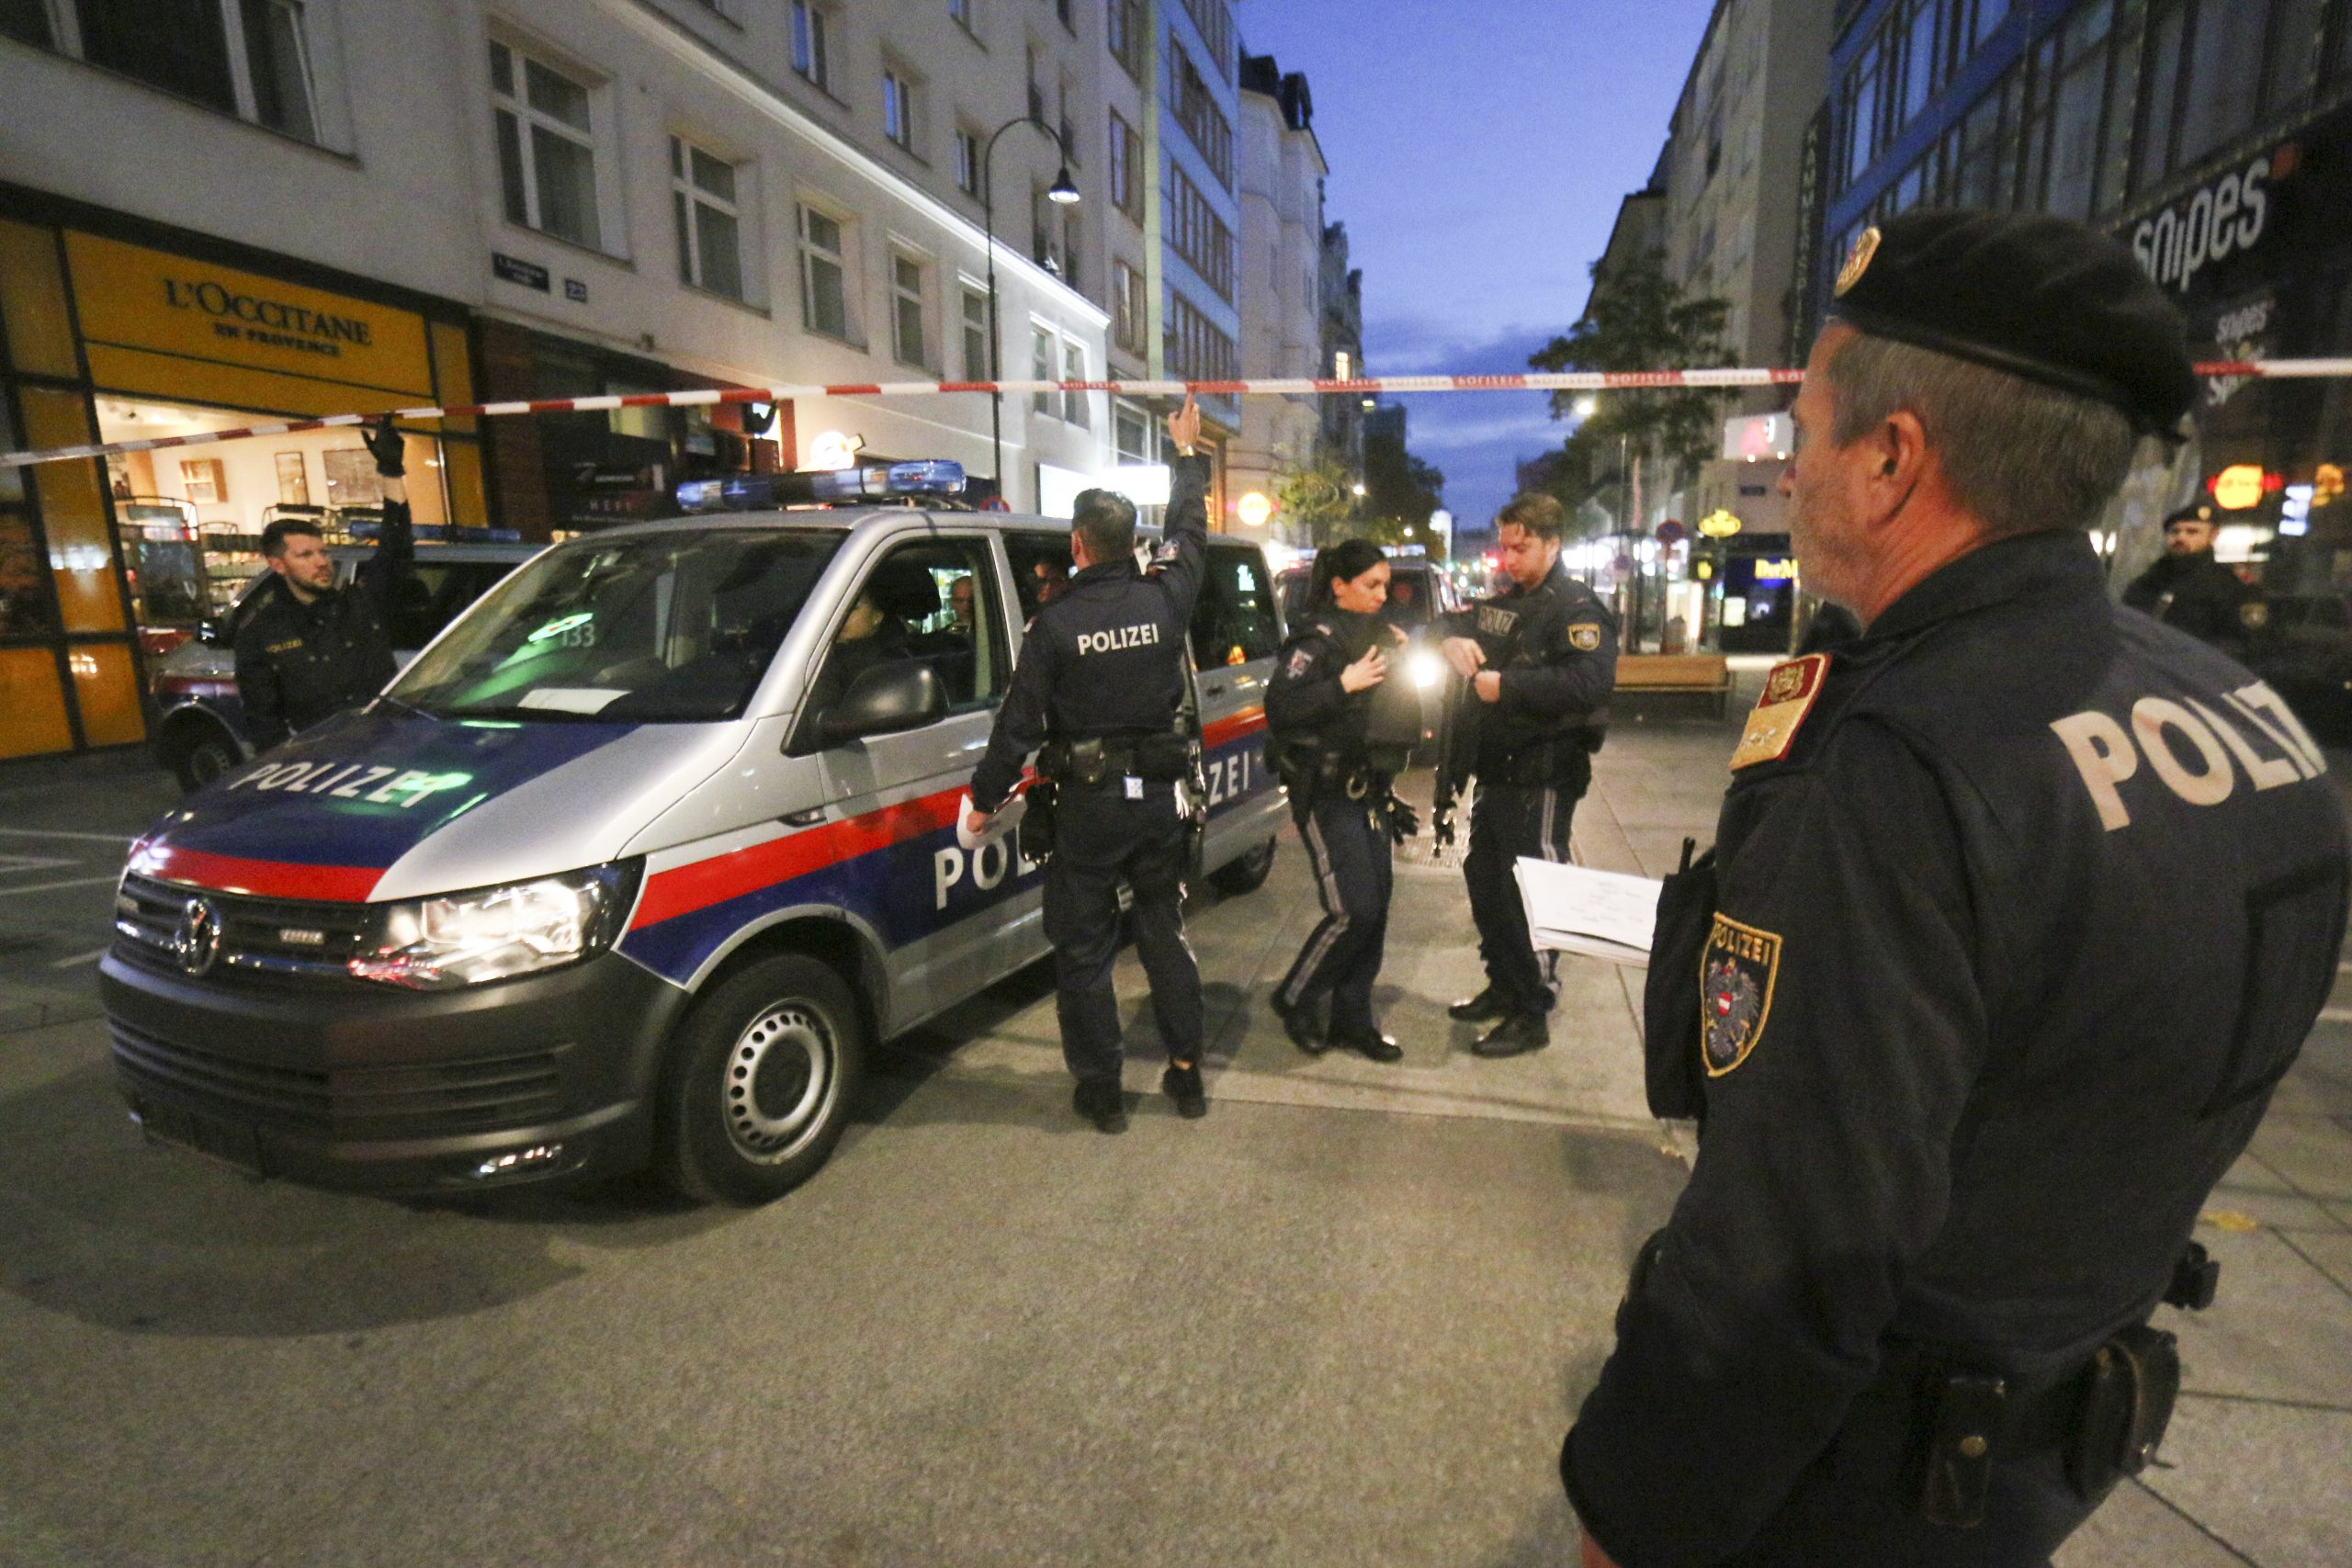 Opposition Parties and Politicians Express Solidarity in Wake of Vienna Terror Attack